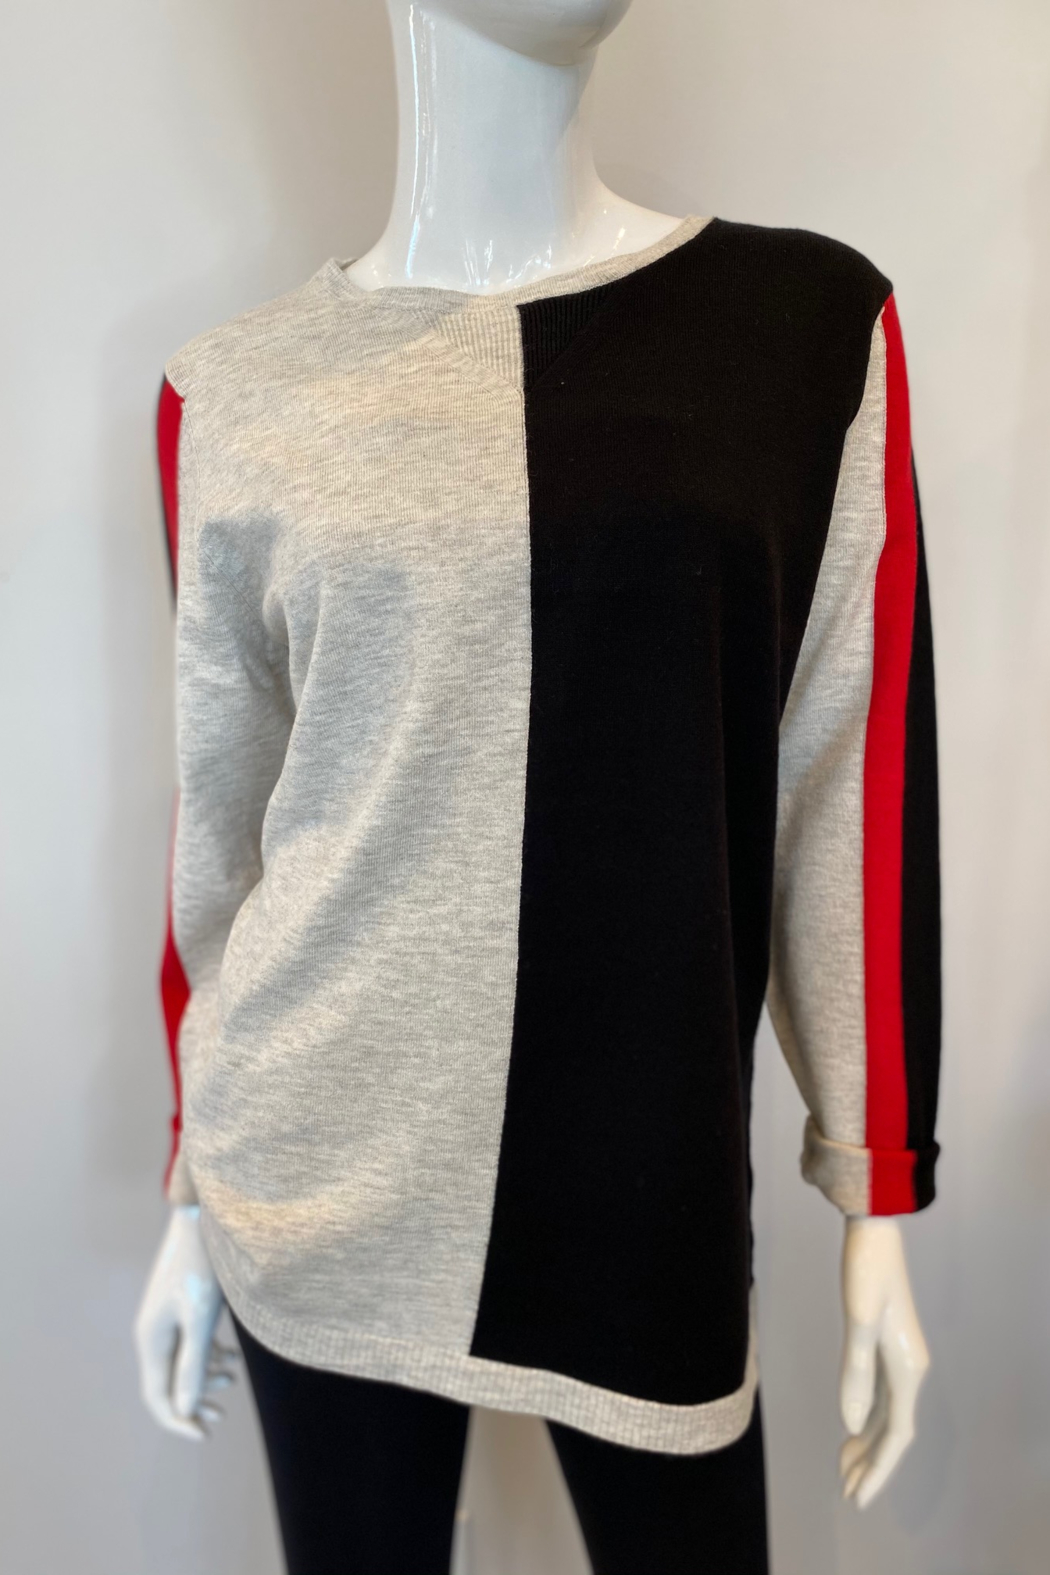 ByLyse 762-2222 - Sweater - Front Cropped Image